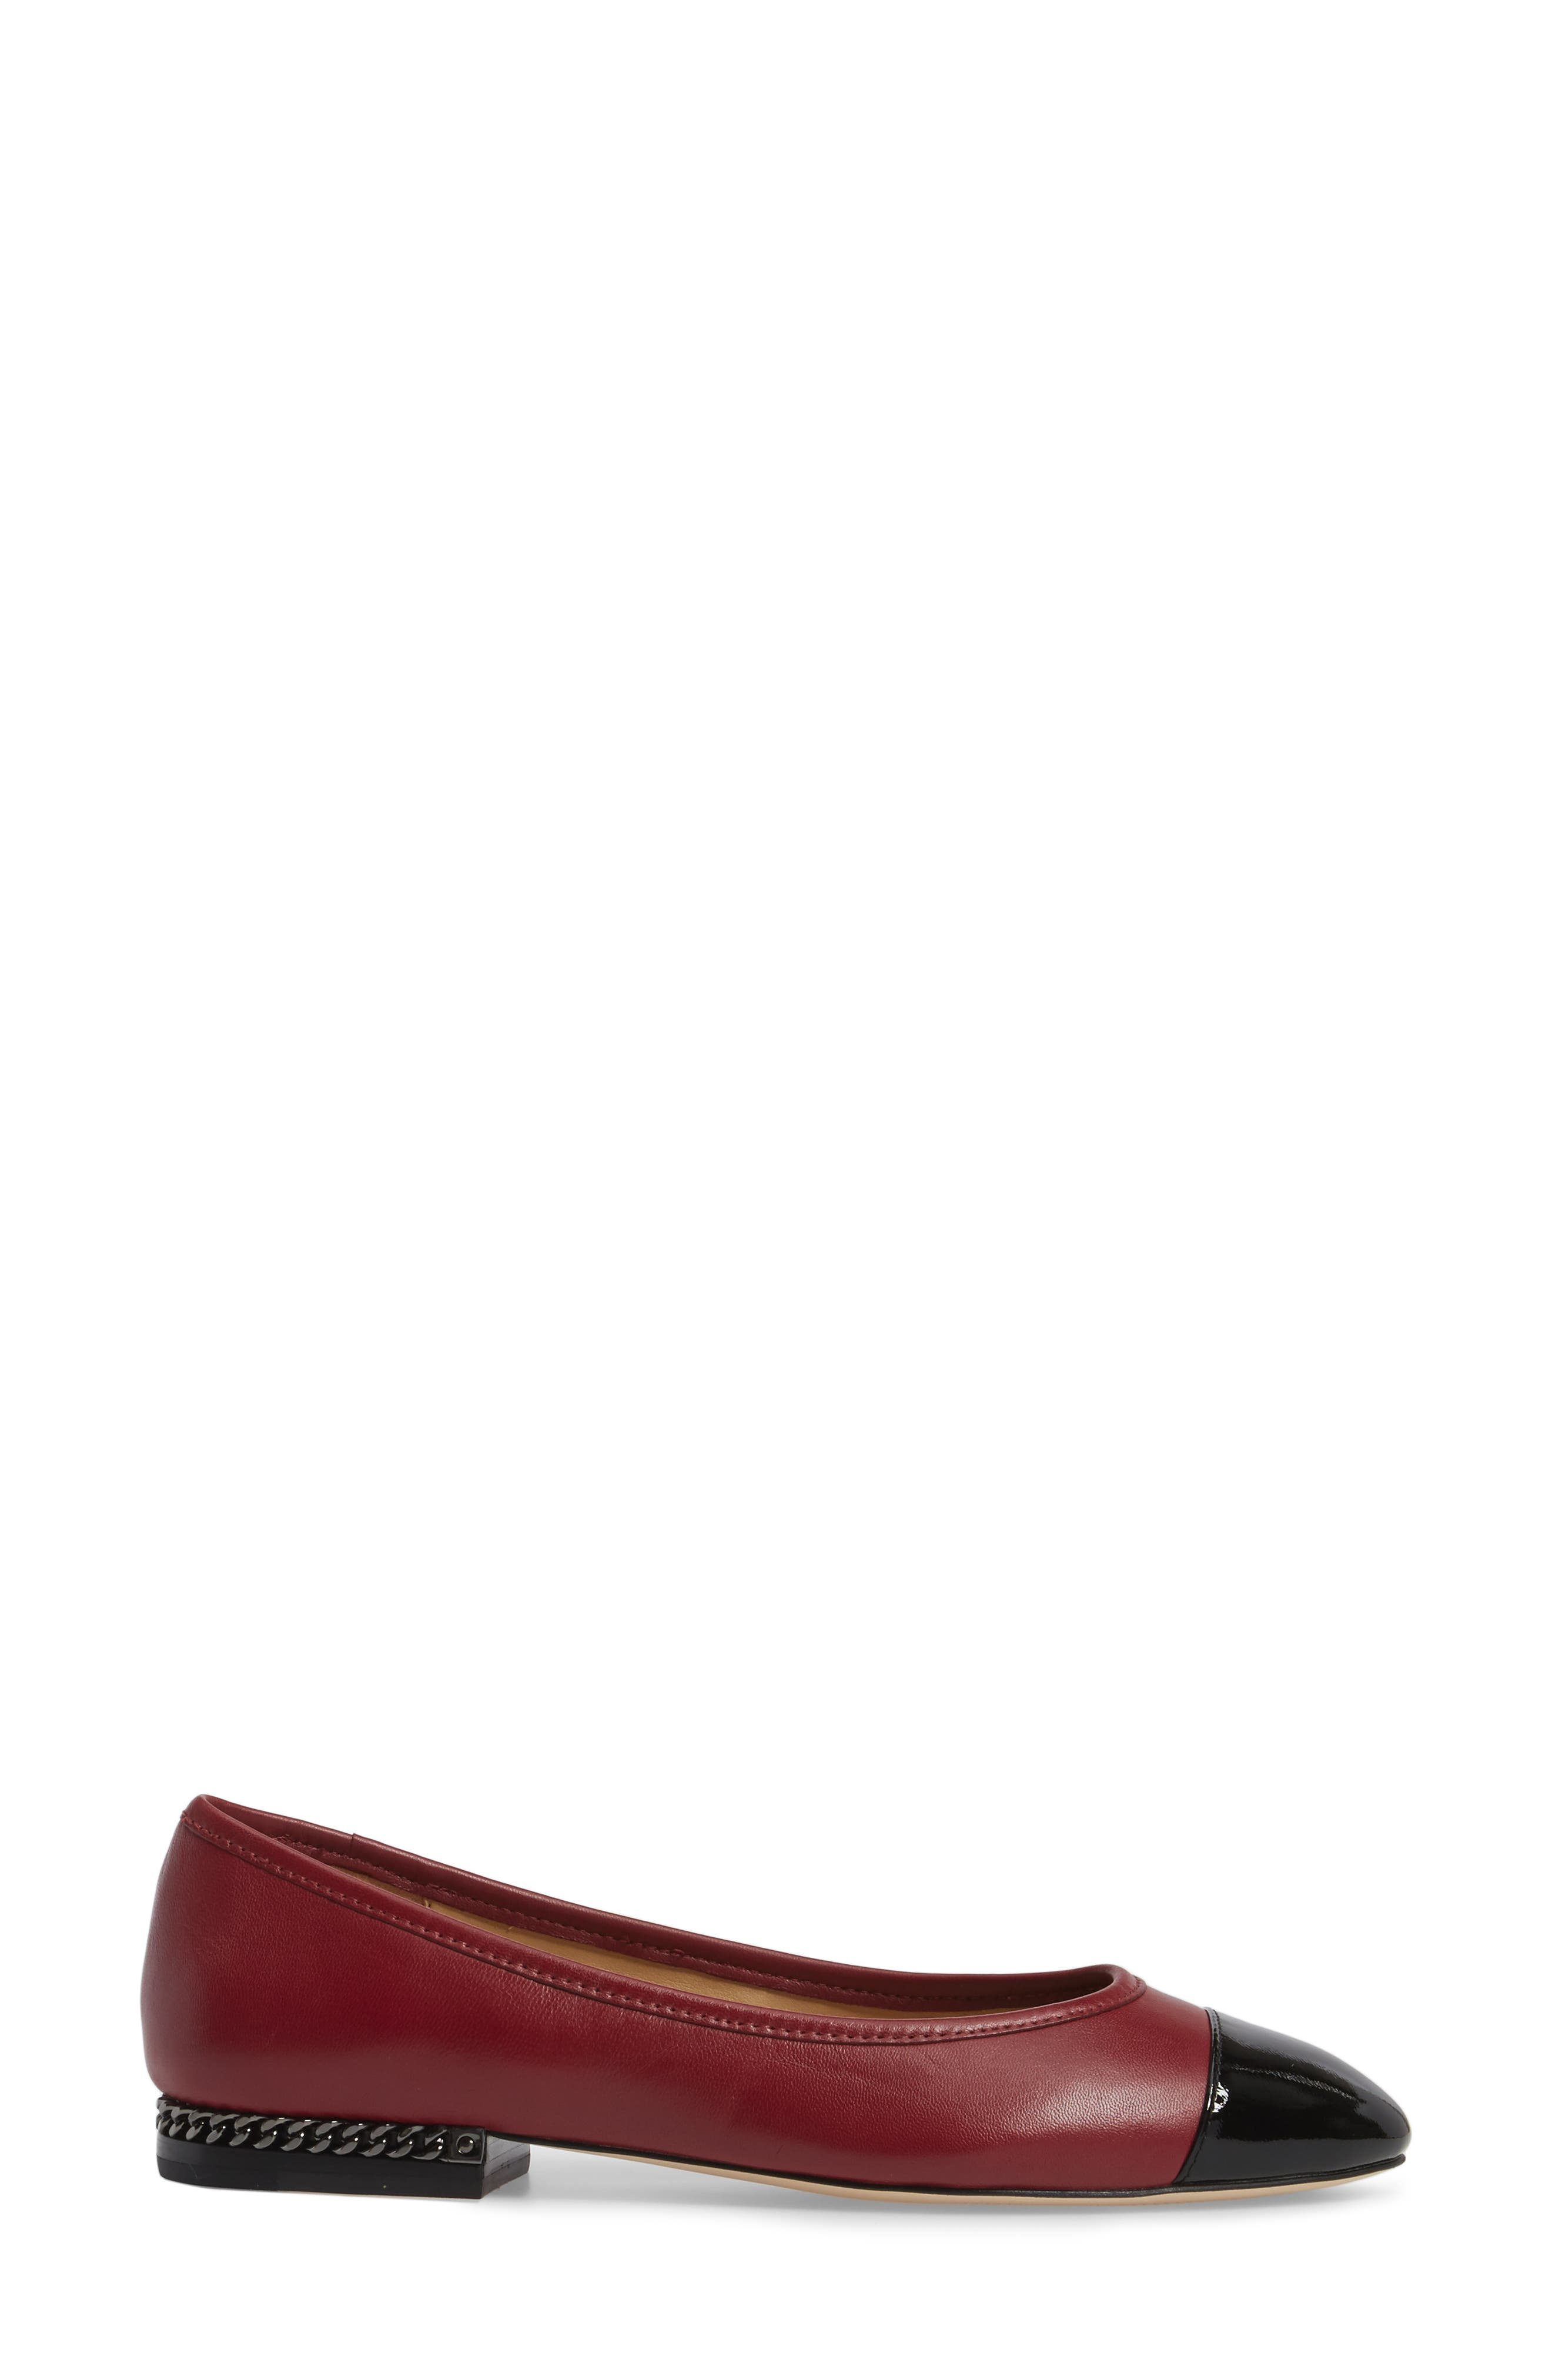 'Sabrina' Ballet Flat,                             Alternate thumbnail 2, color,                             Mulberry Patent Leather